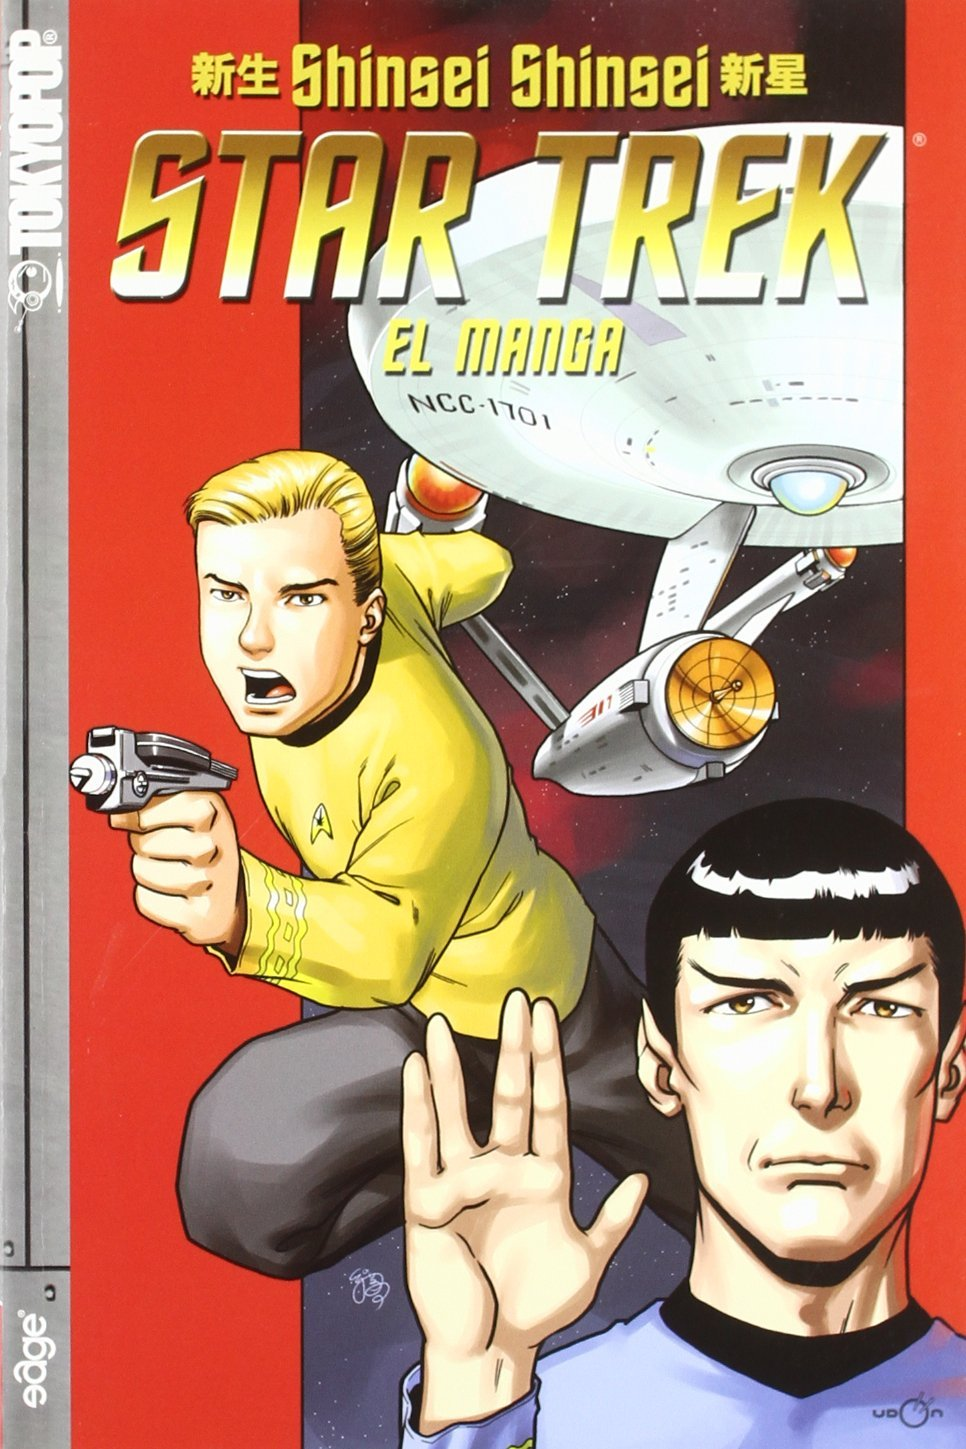 Pack Star Trek. El Manga: Amazon.es: Vv.Aa., Vv.Aa.: Libros